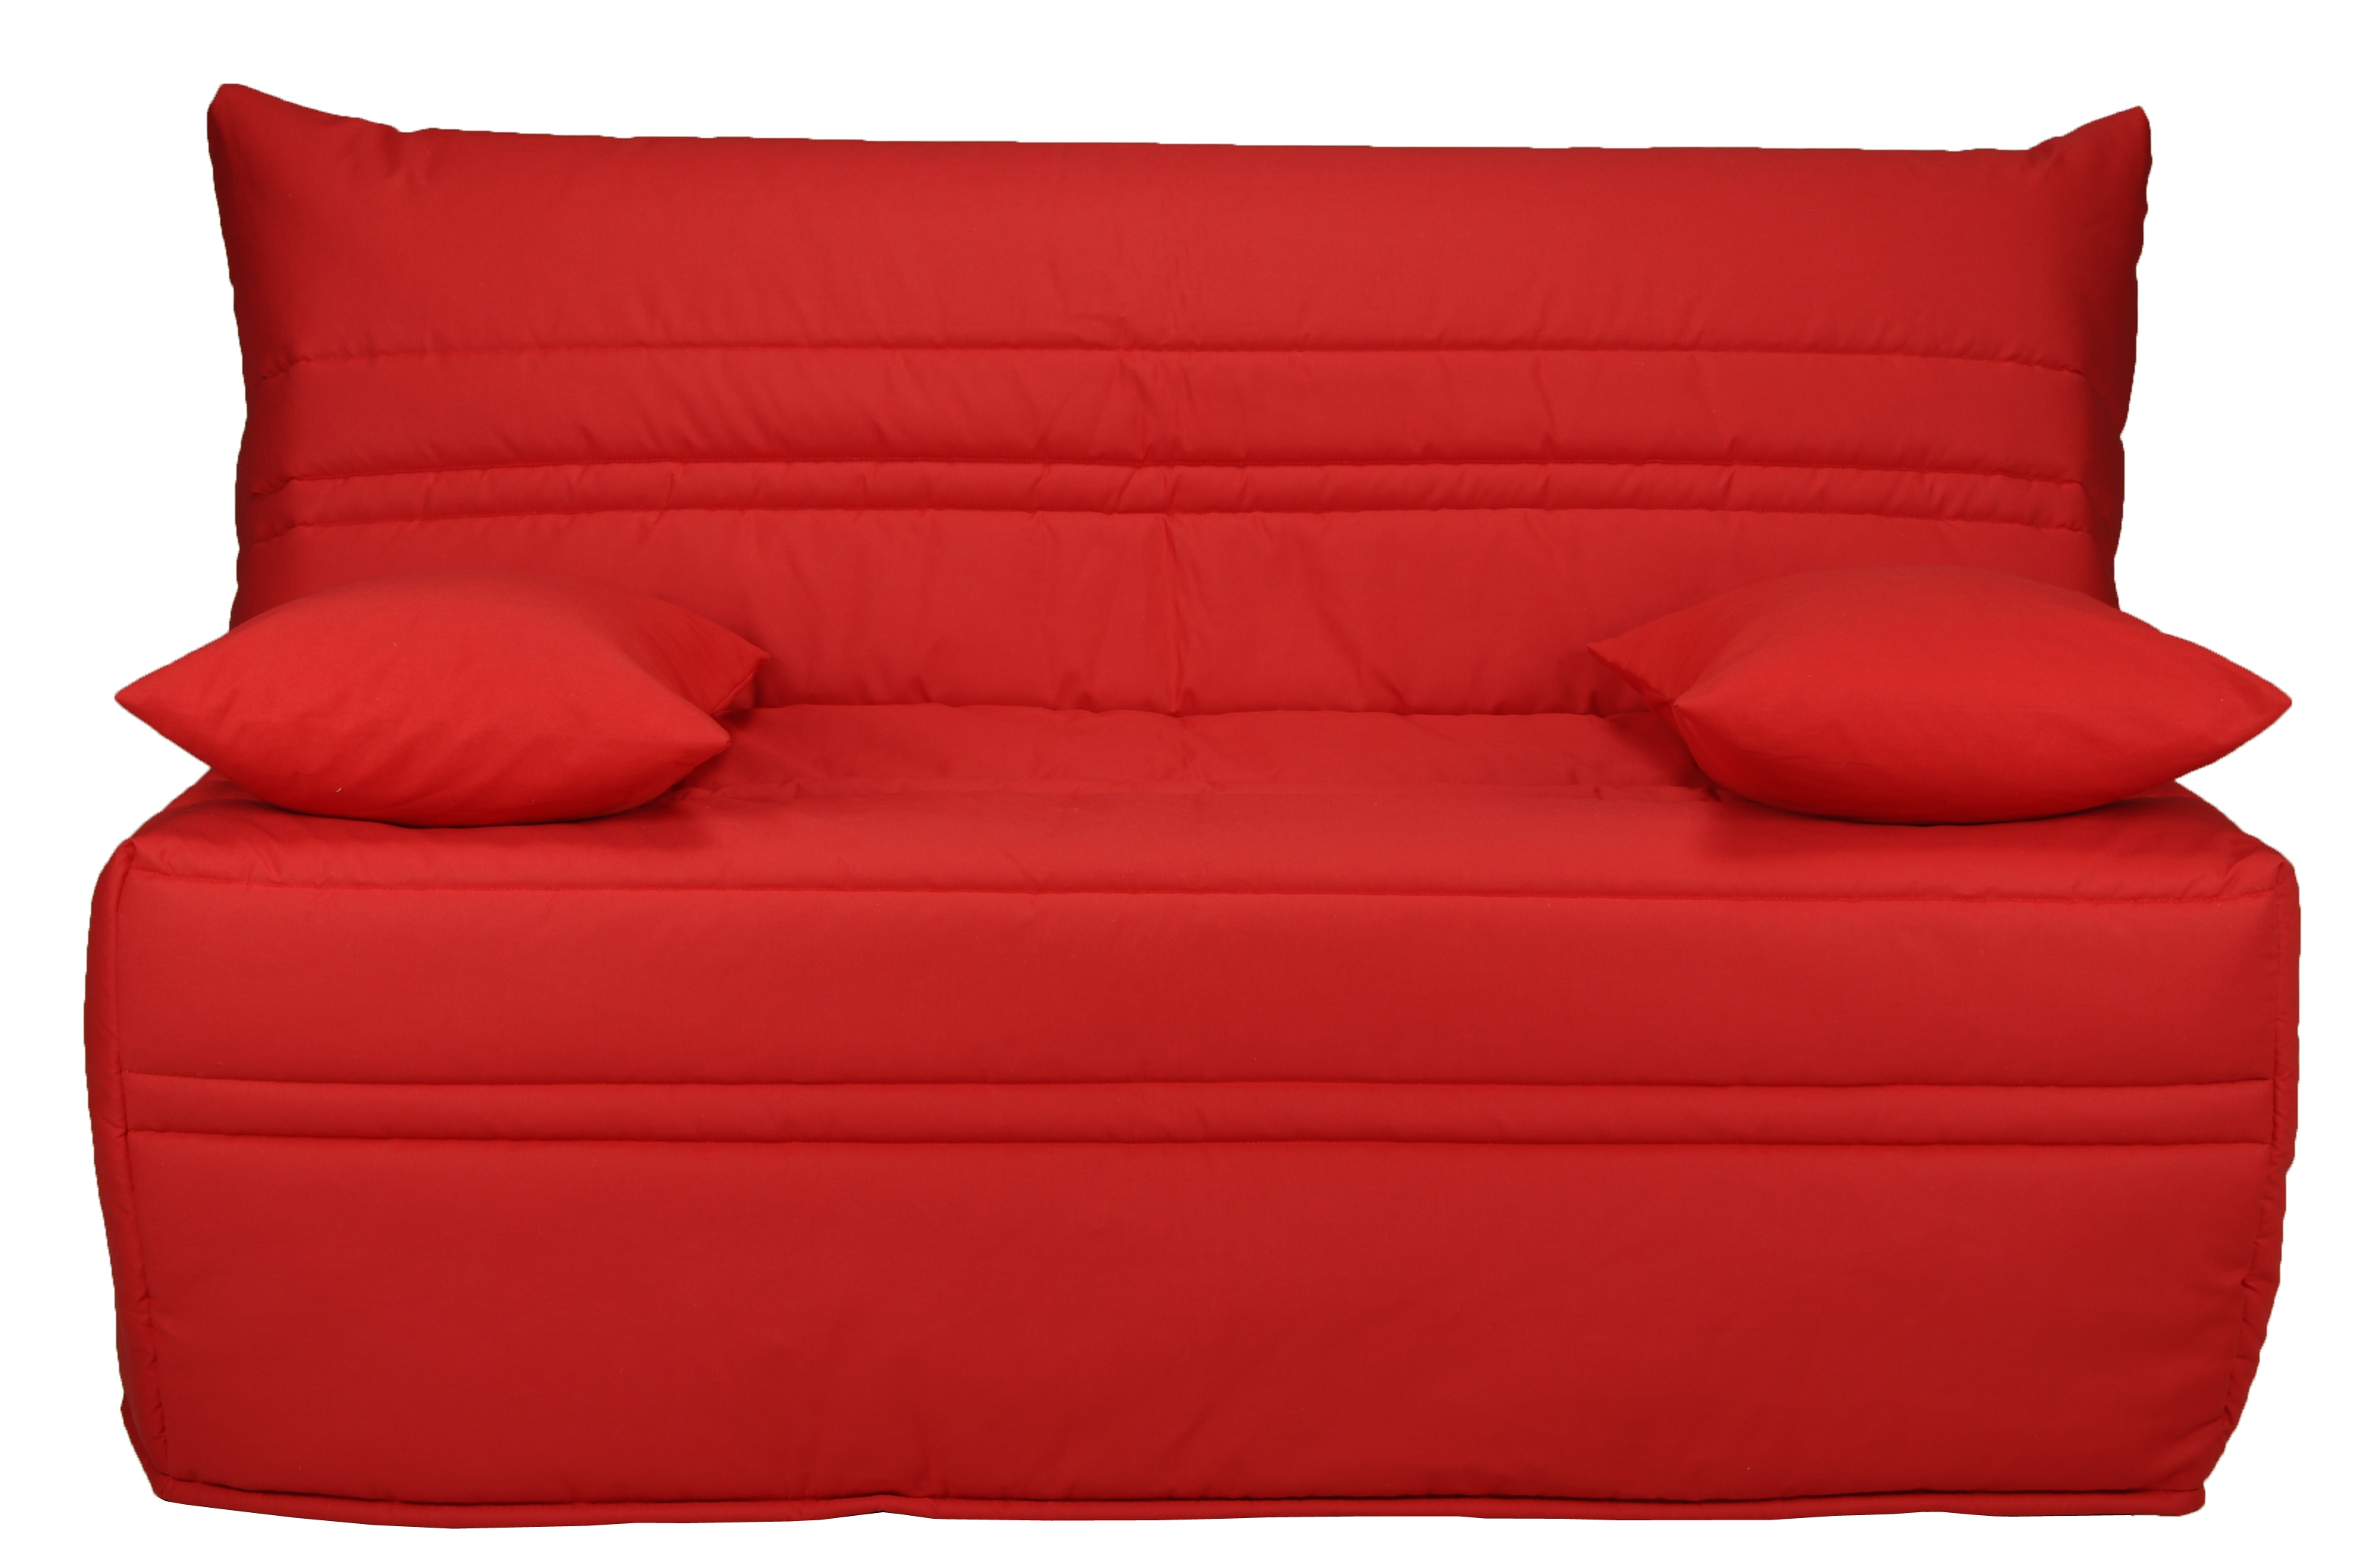 banquette bz rouge matelas sofaflex 9 cm christiana. Black Bedroom Furniture Sets. Home Design Ideas